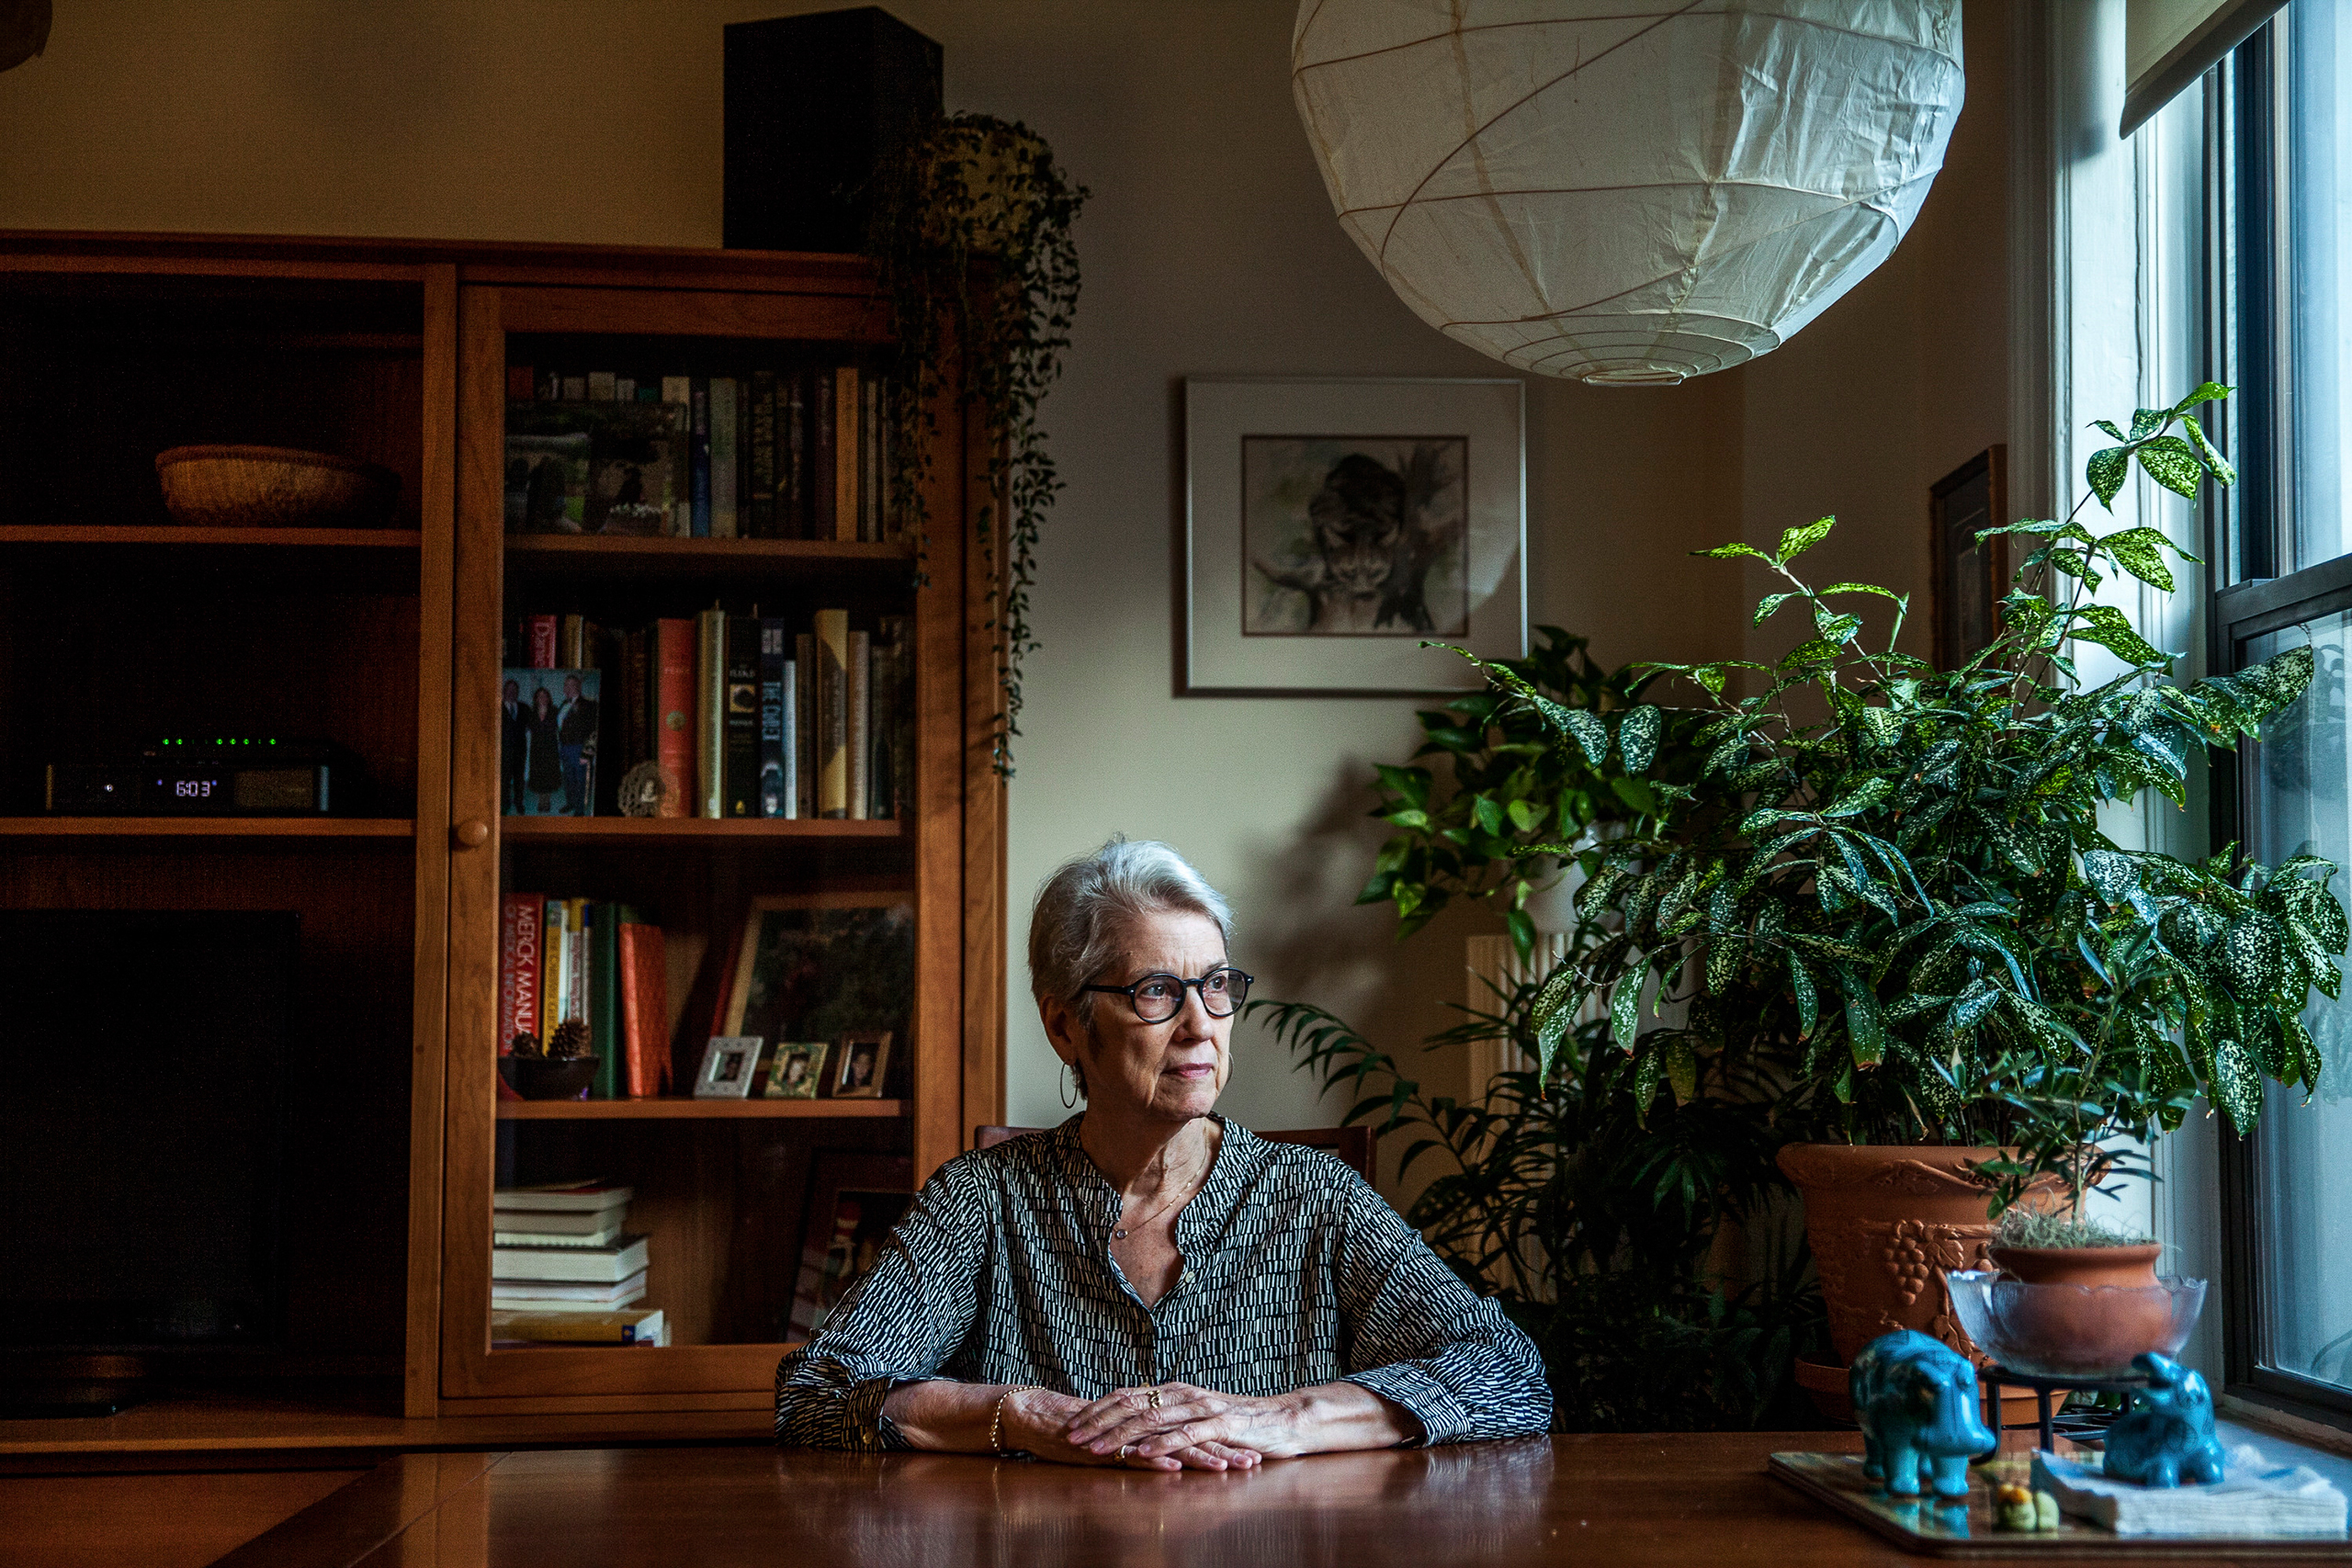 Jessica Leeds, a businesswoman at a paper company who was sitting next to Donald Trump on a flight to New York in the early 1980s, at her home in New York on Oct. 11, 2016. Leeds, who had never met Trump before, said that on the flight he lifted the armrest and began to touch her.